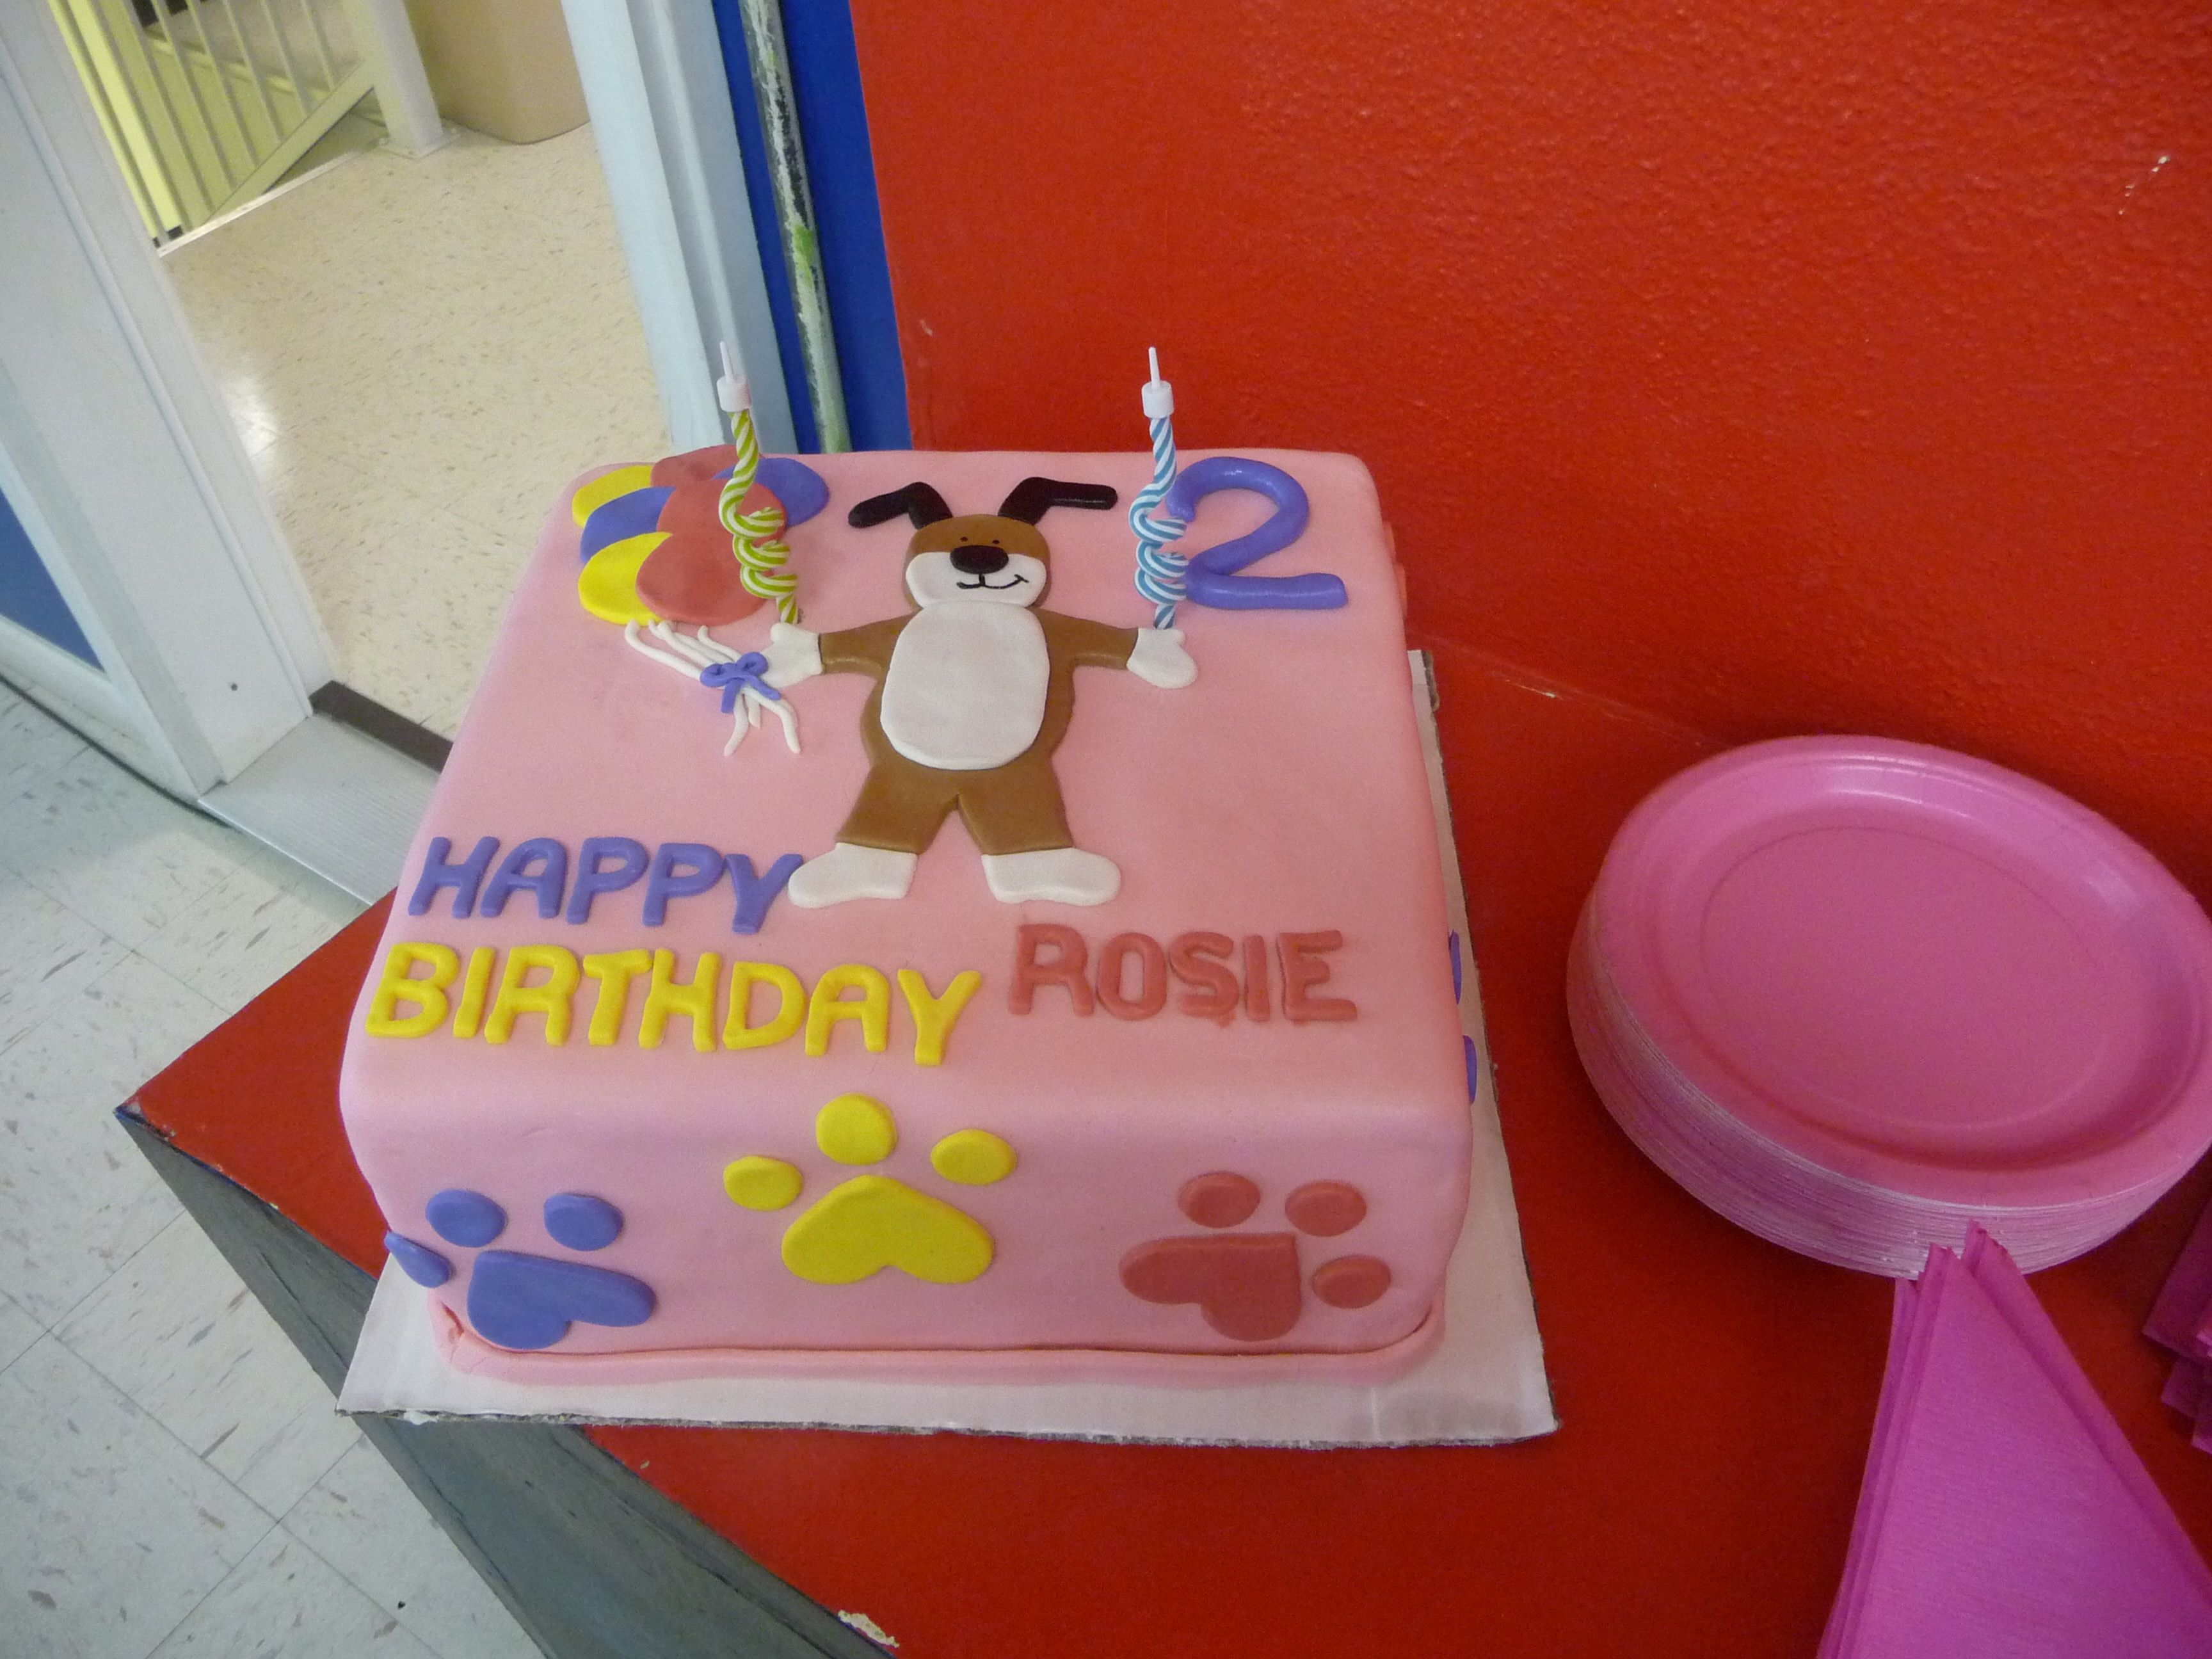 Pleasing Rosies Kipper Cake Done By My Friend Meagan Who Owns Madelines Funny Birthday Cards Online Chimdamsfinfo